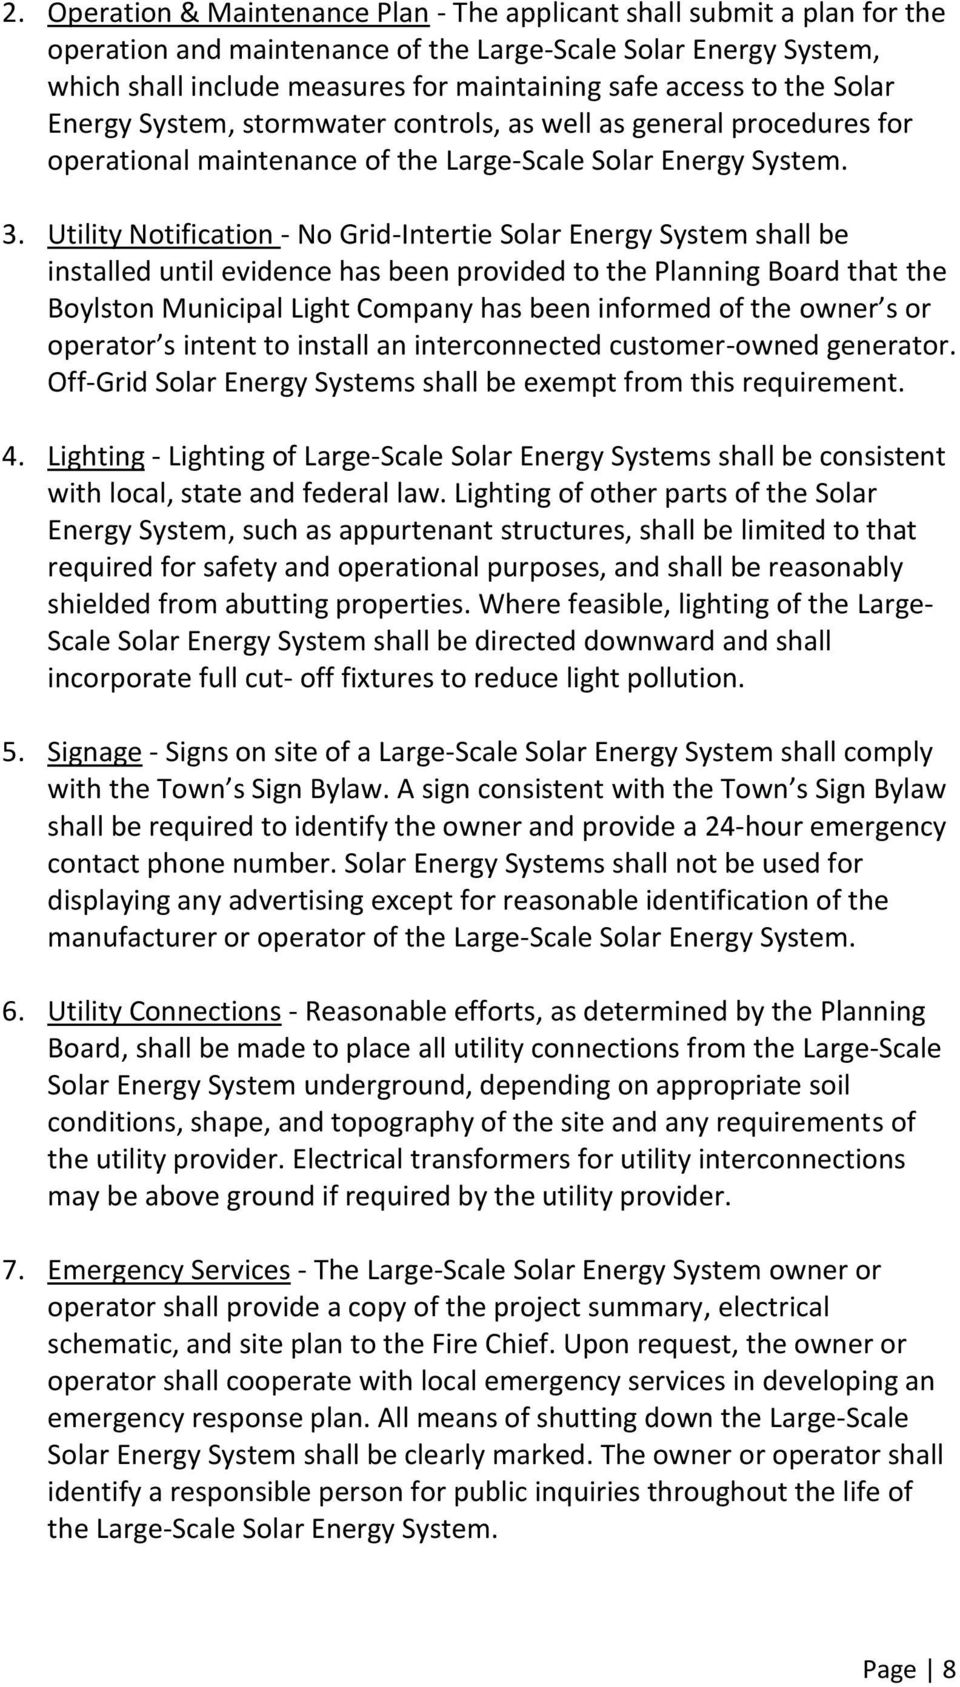 Utility Notification - No Grid-Intertie Solar Energy System shall be installed until evidence has been provided to the Planning Board that the Boylston Municipal Light Company has been informed of